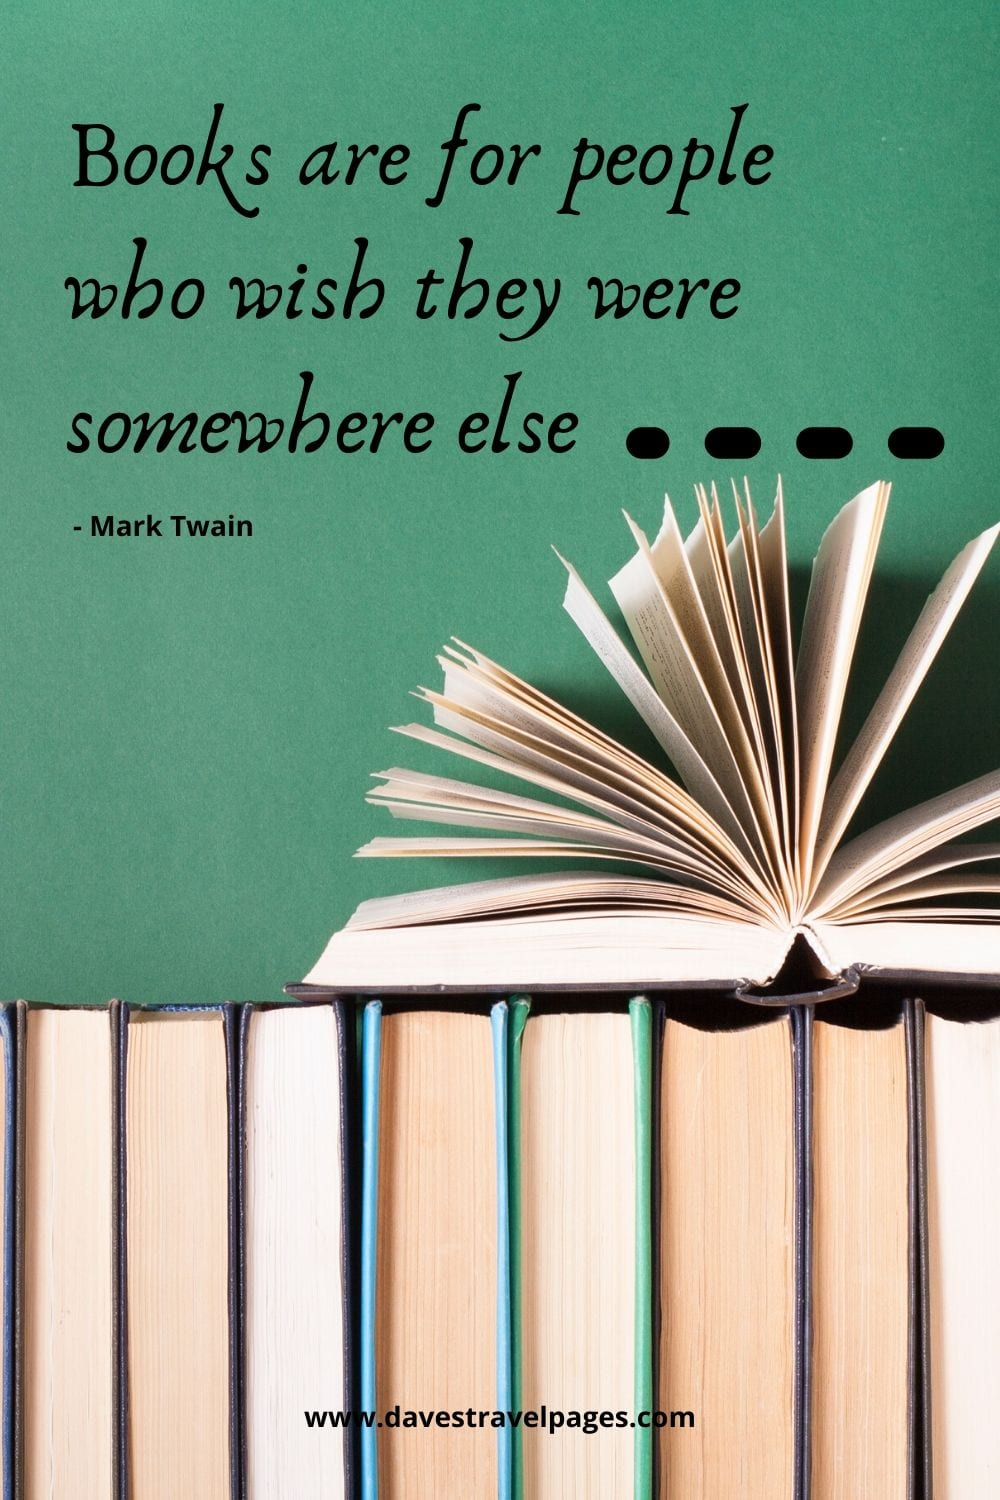 """Books are for people who wish they were somewhere else."" Sayings by Mark Twain"